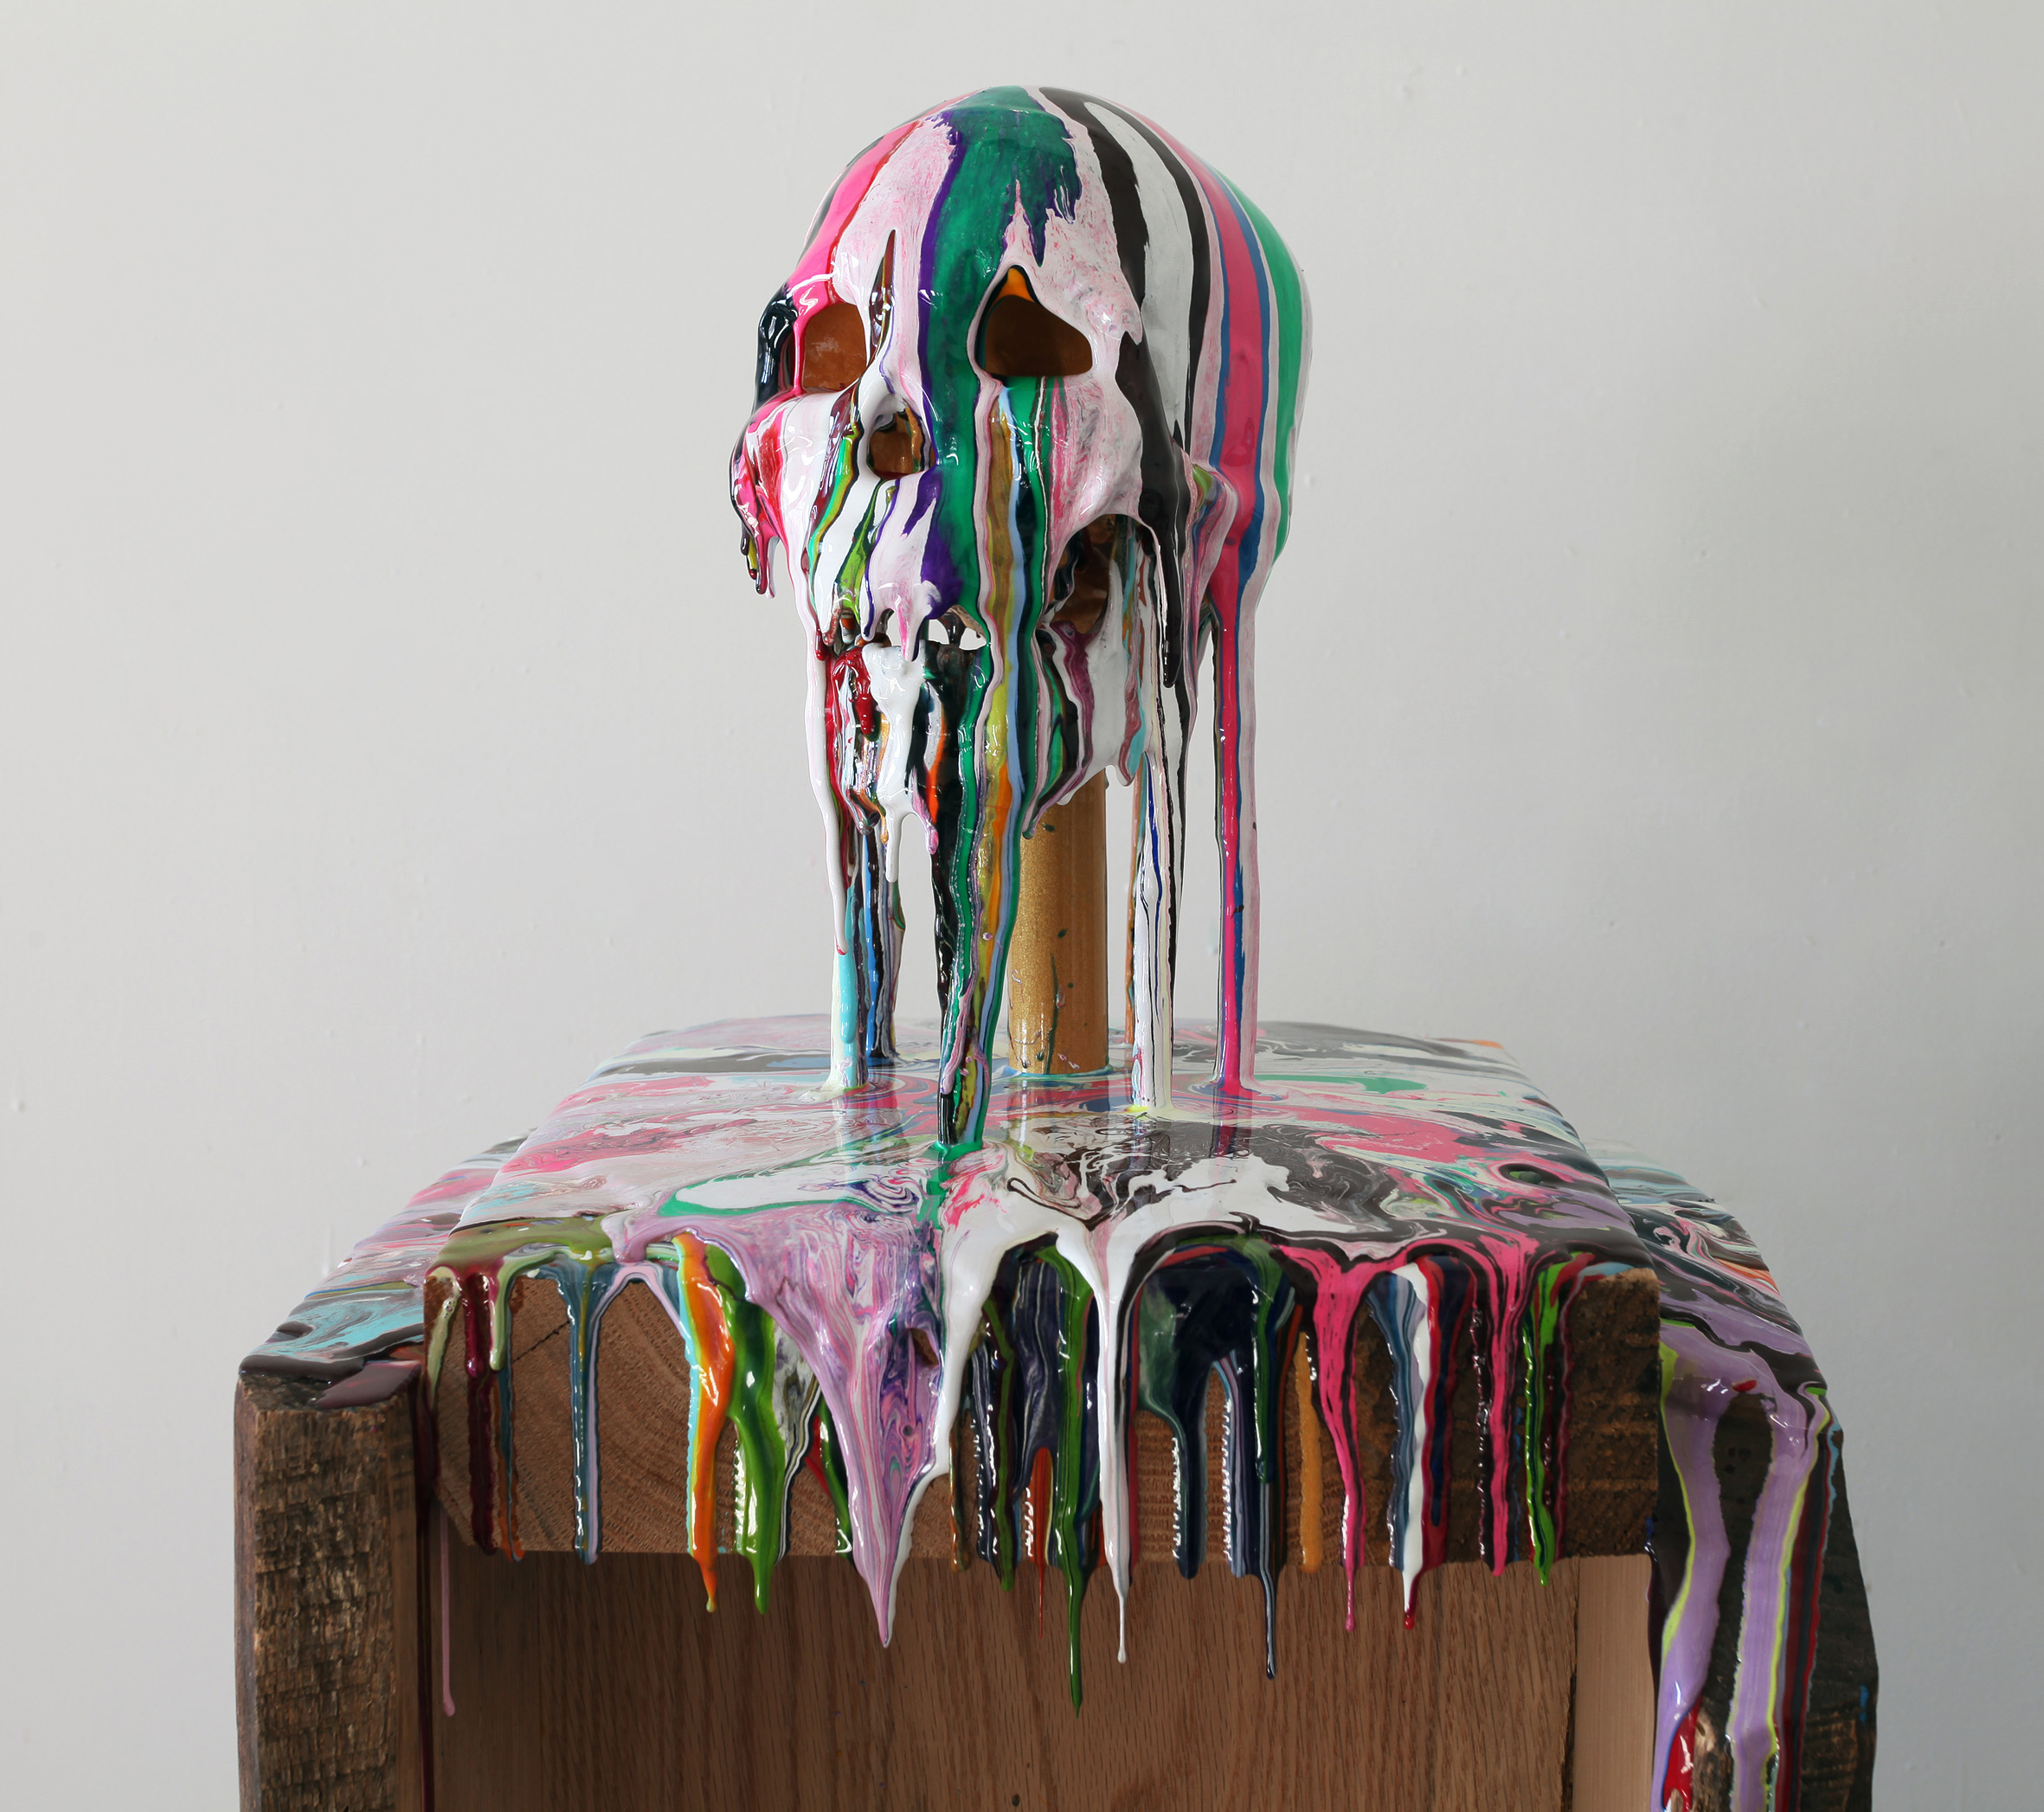 SKULL6(YOURHOUSEISMYWORLD), 2012